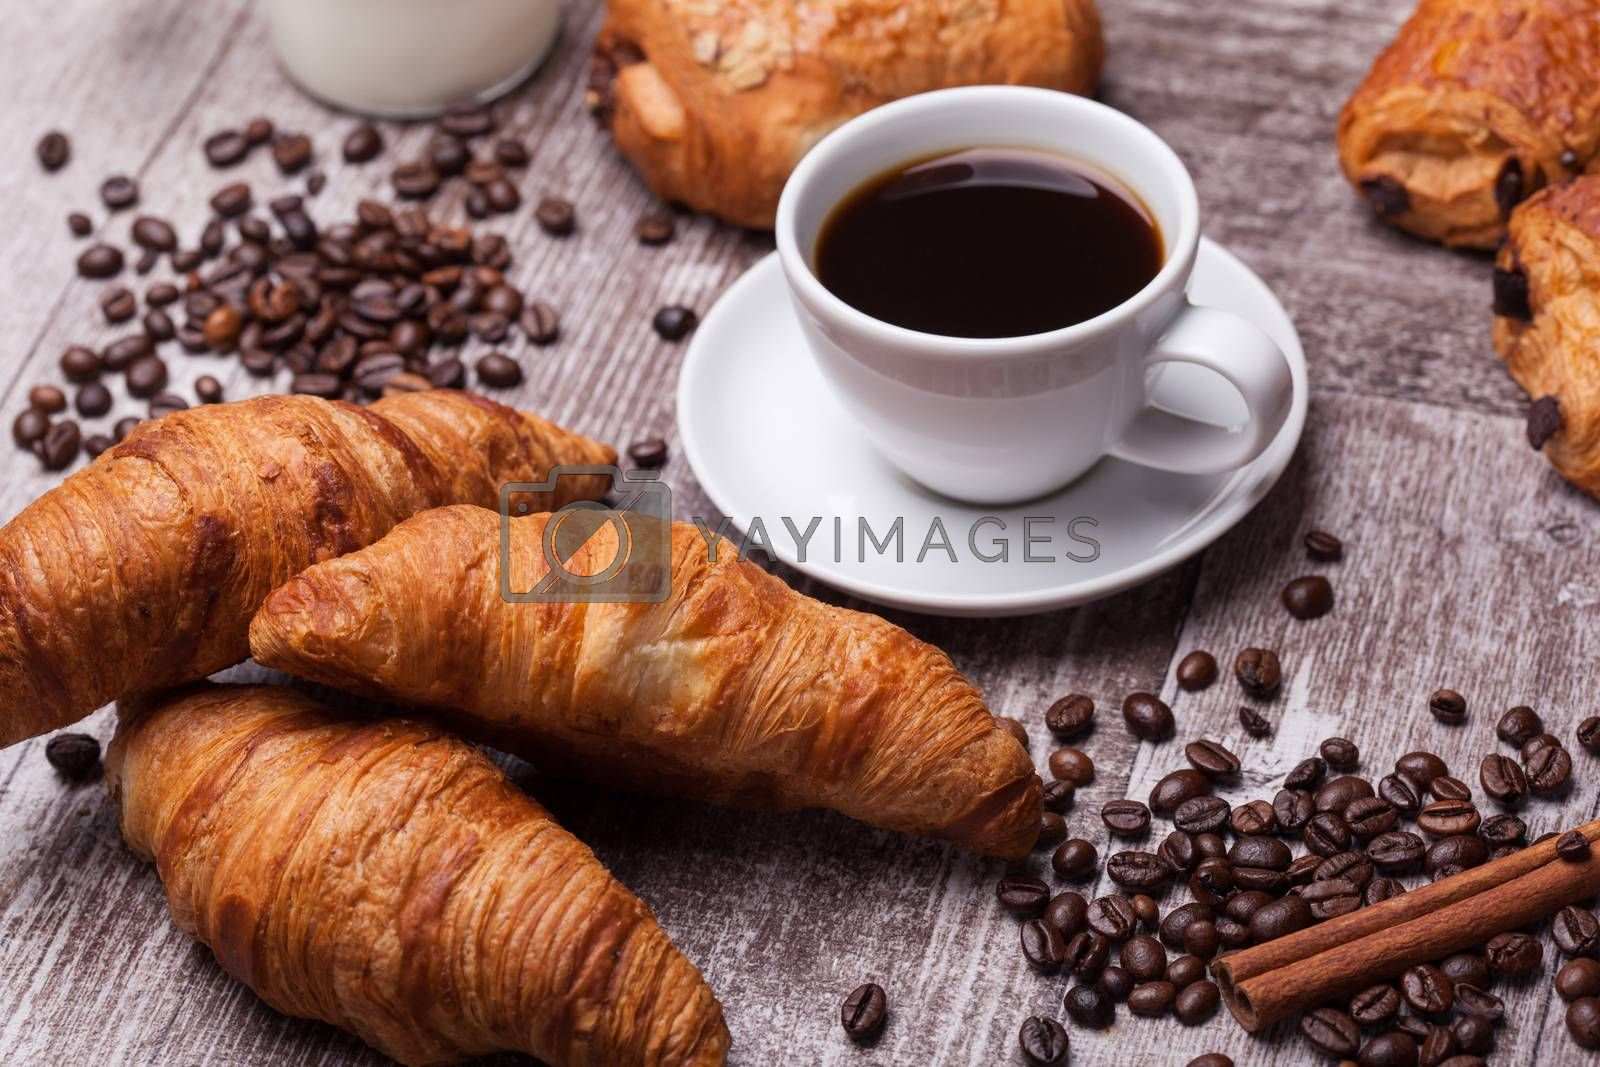 Coffee and croissant for breakfast on rustic wooden table by DCStudio